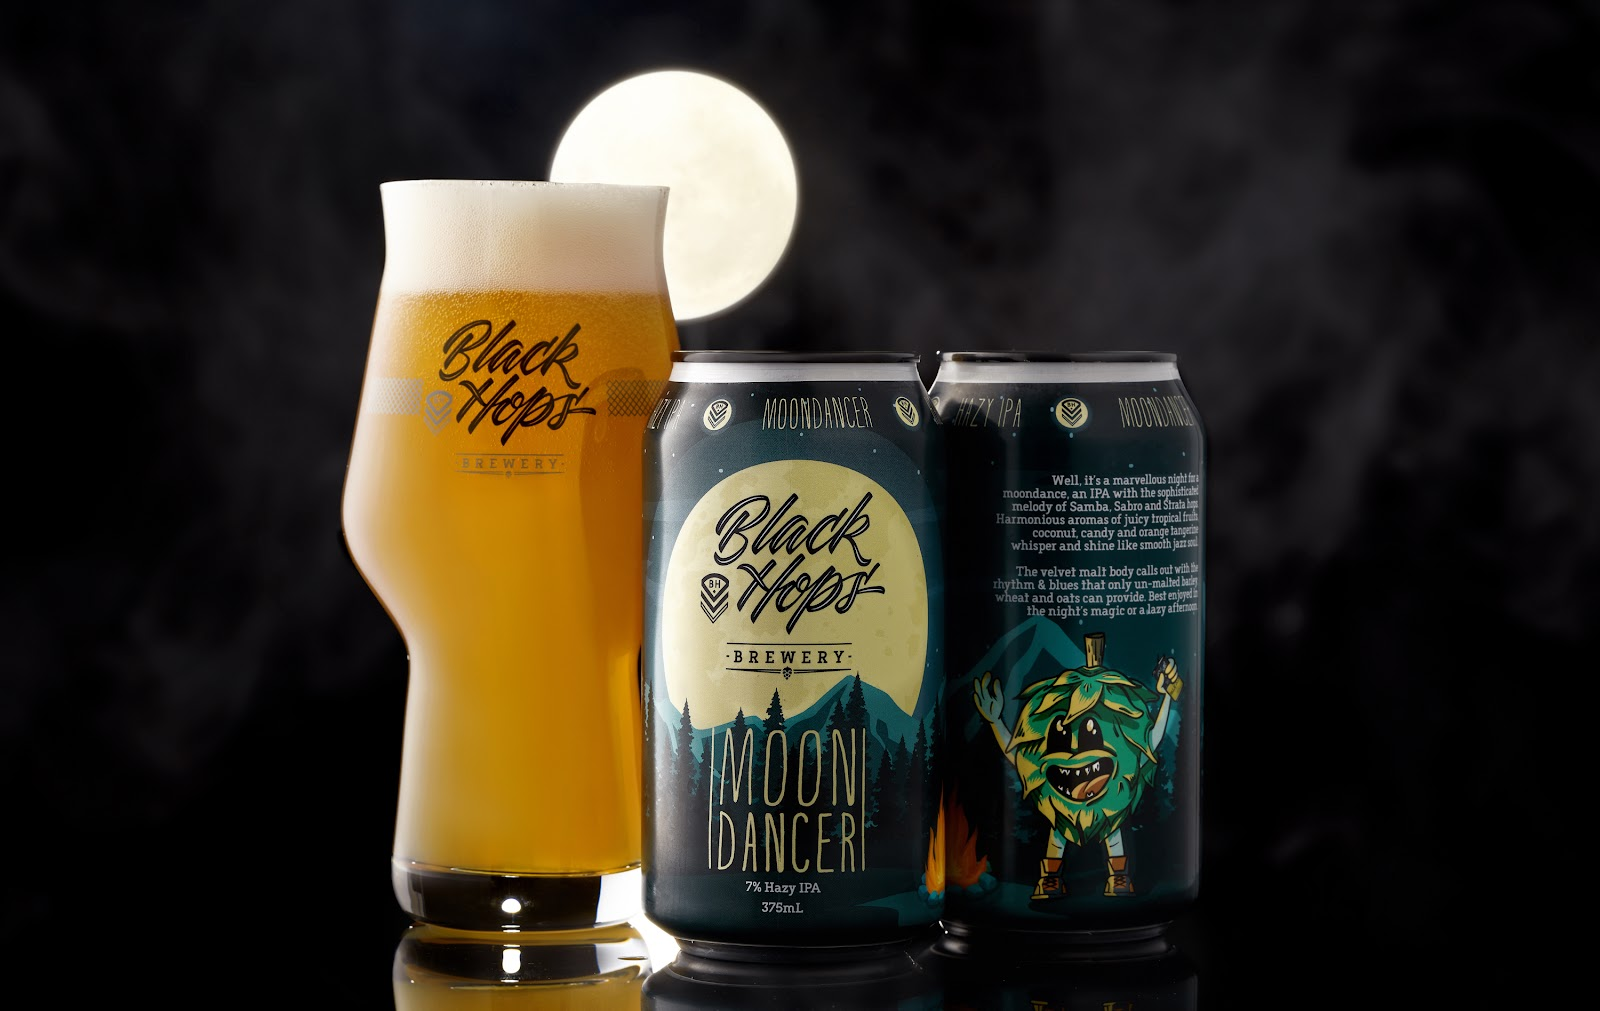 Black Hops Moondancer